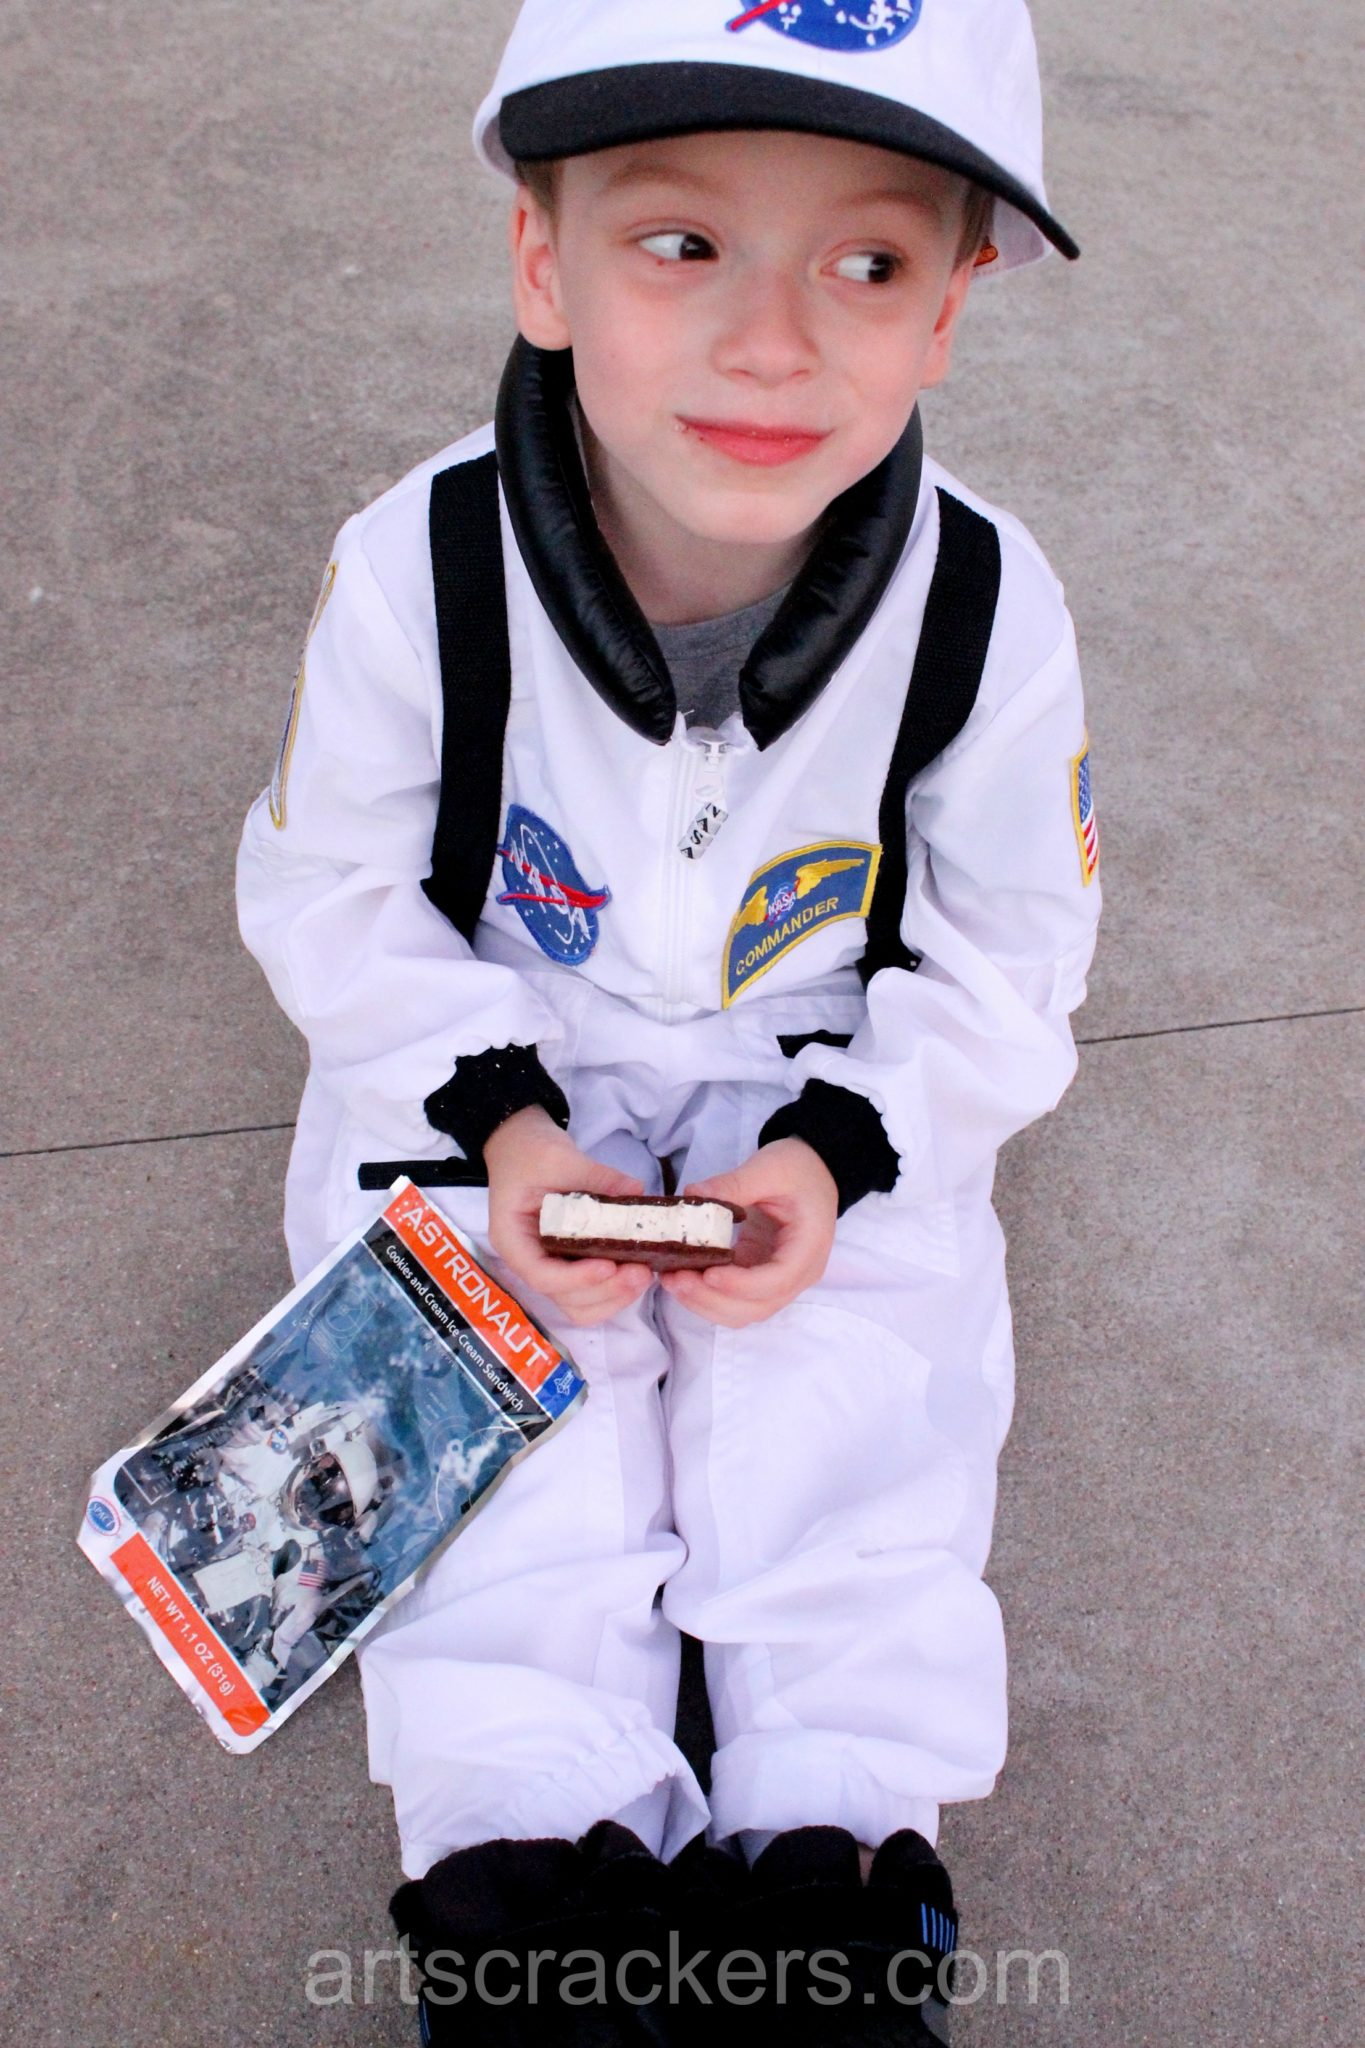 Jr Astronaut Eating Astronaut Ice Cream. Click the picture to read the review.